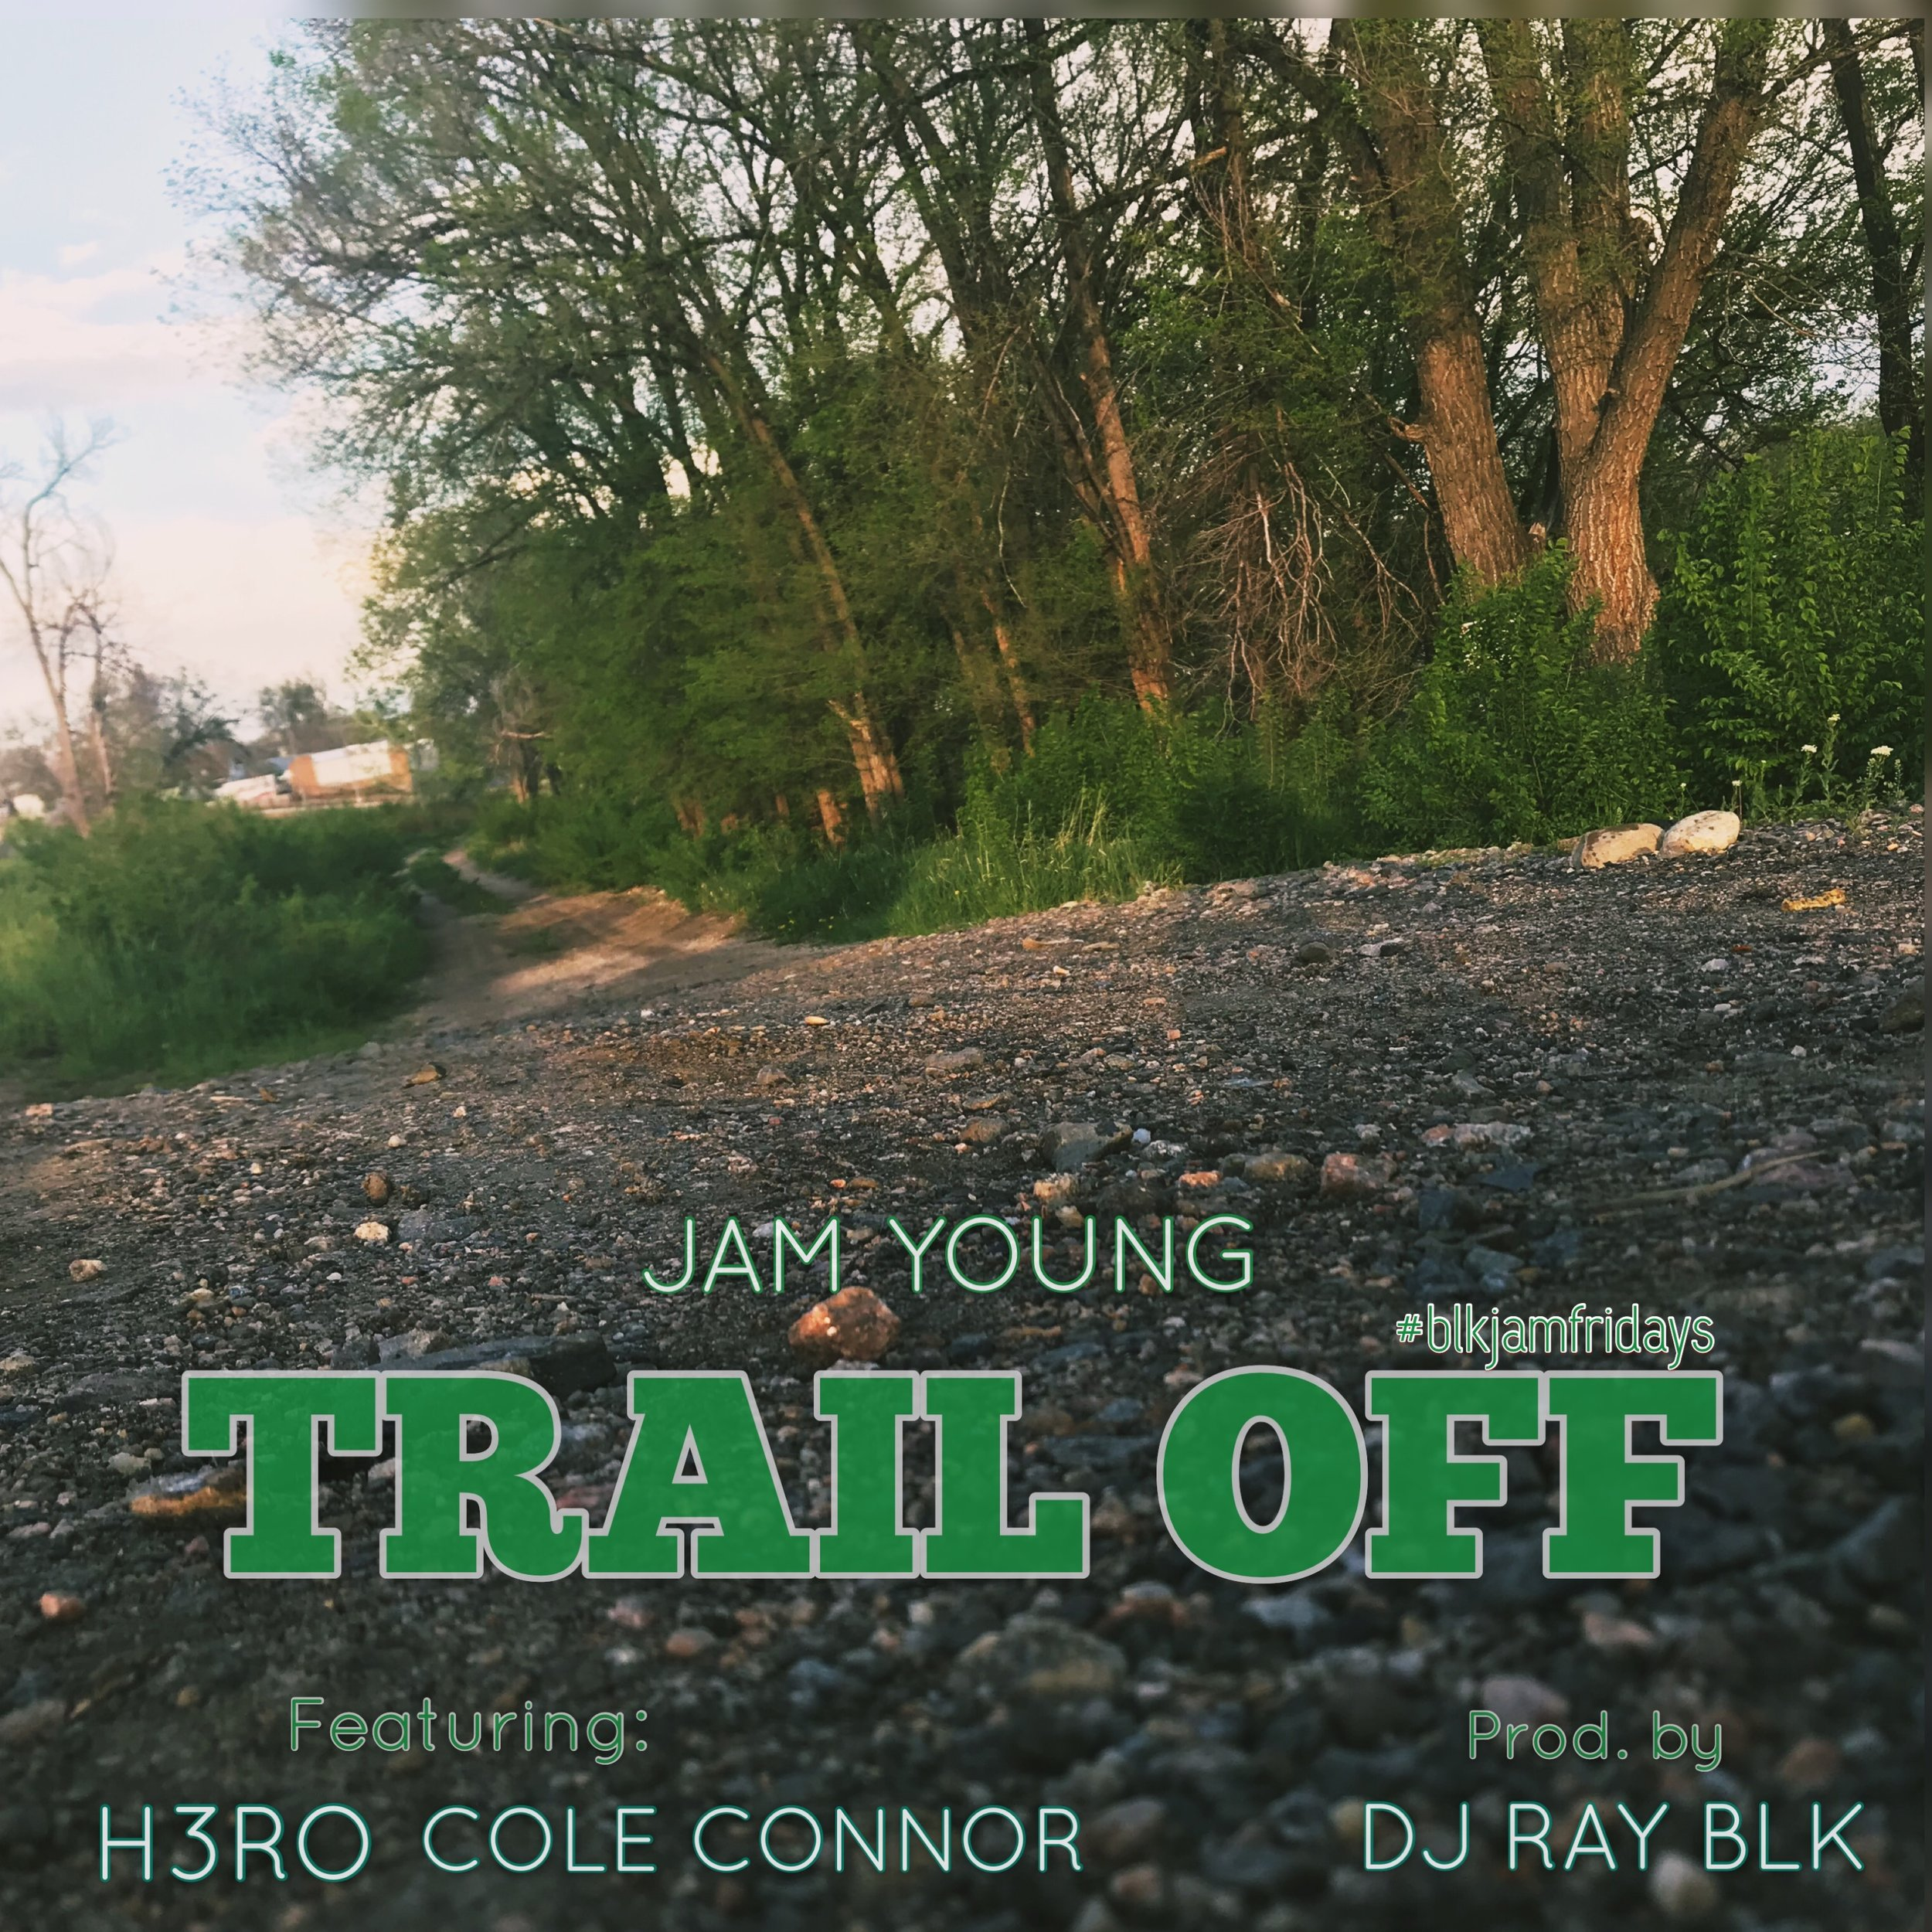 Trail Off Cover Art.JPG